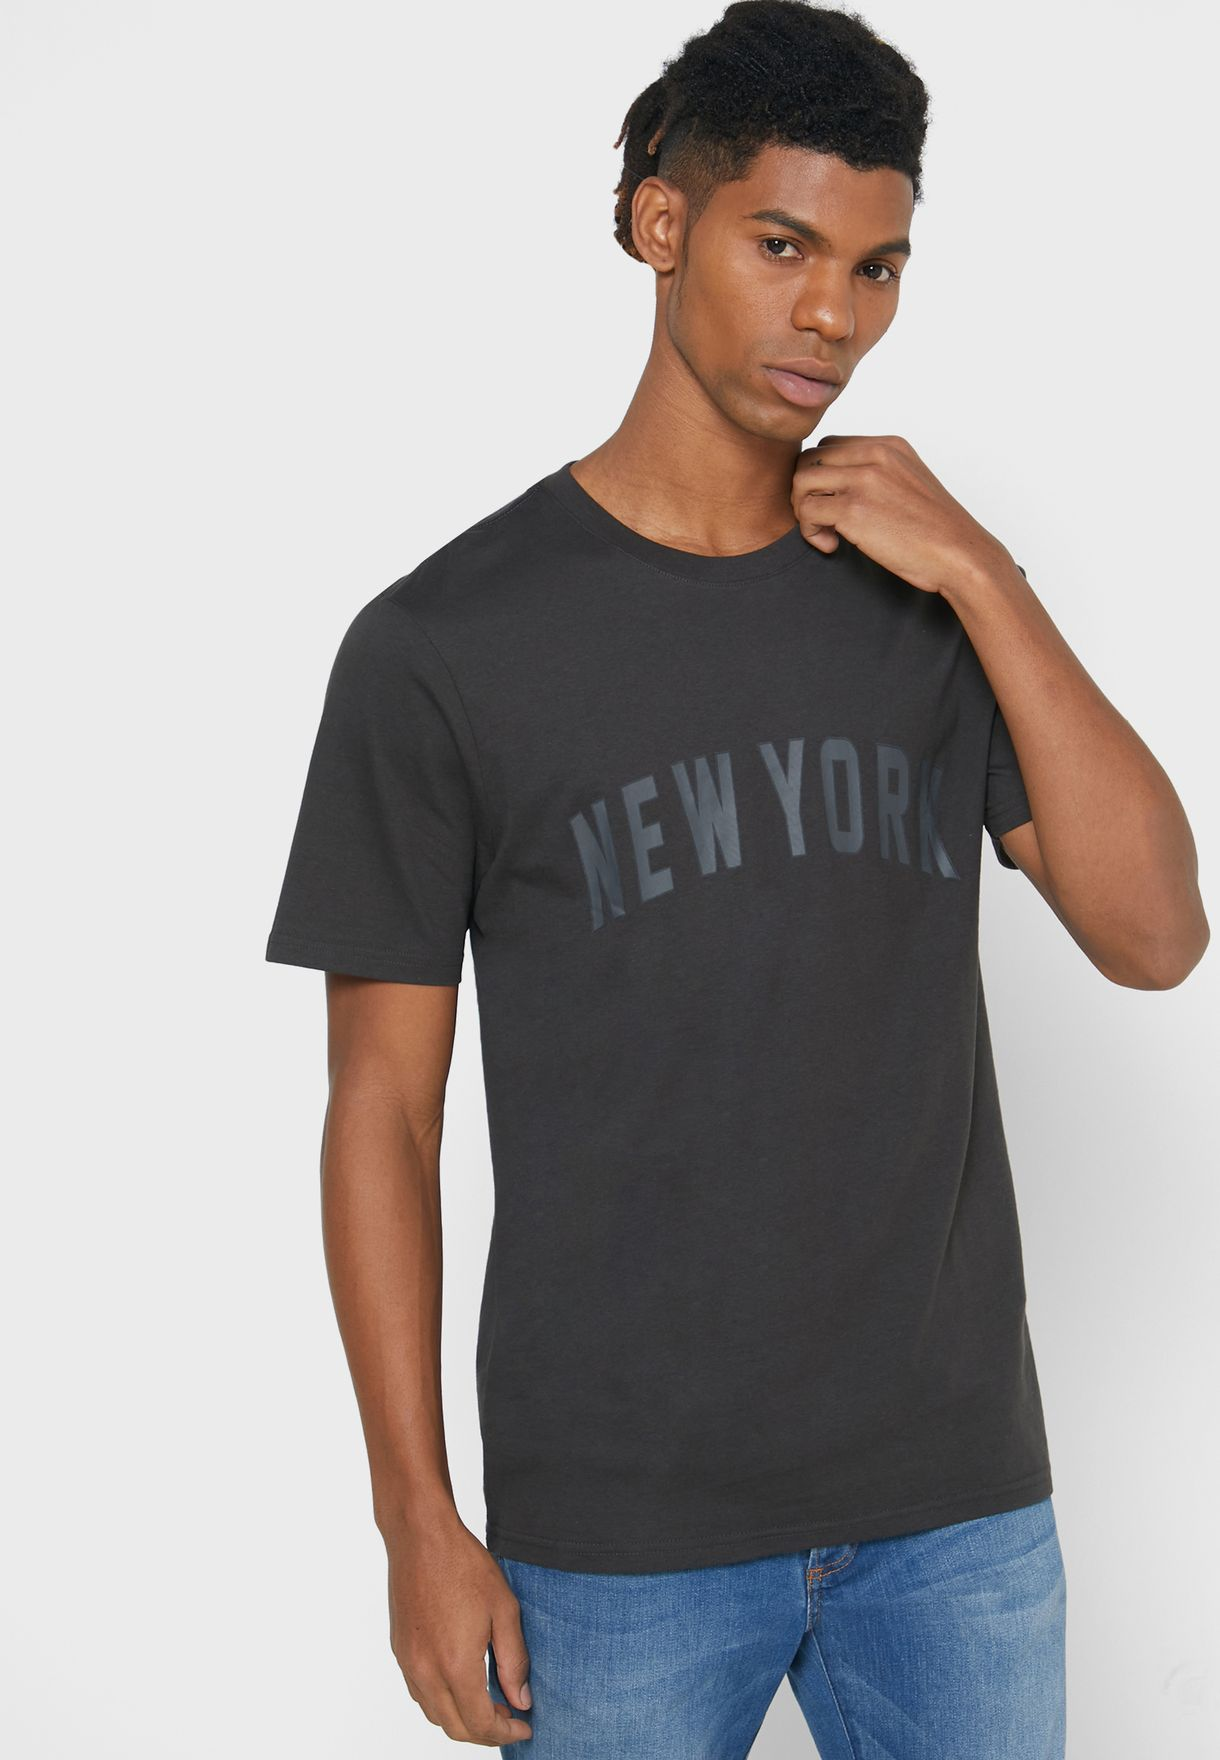 New York Crew Neck T-Shirt